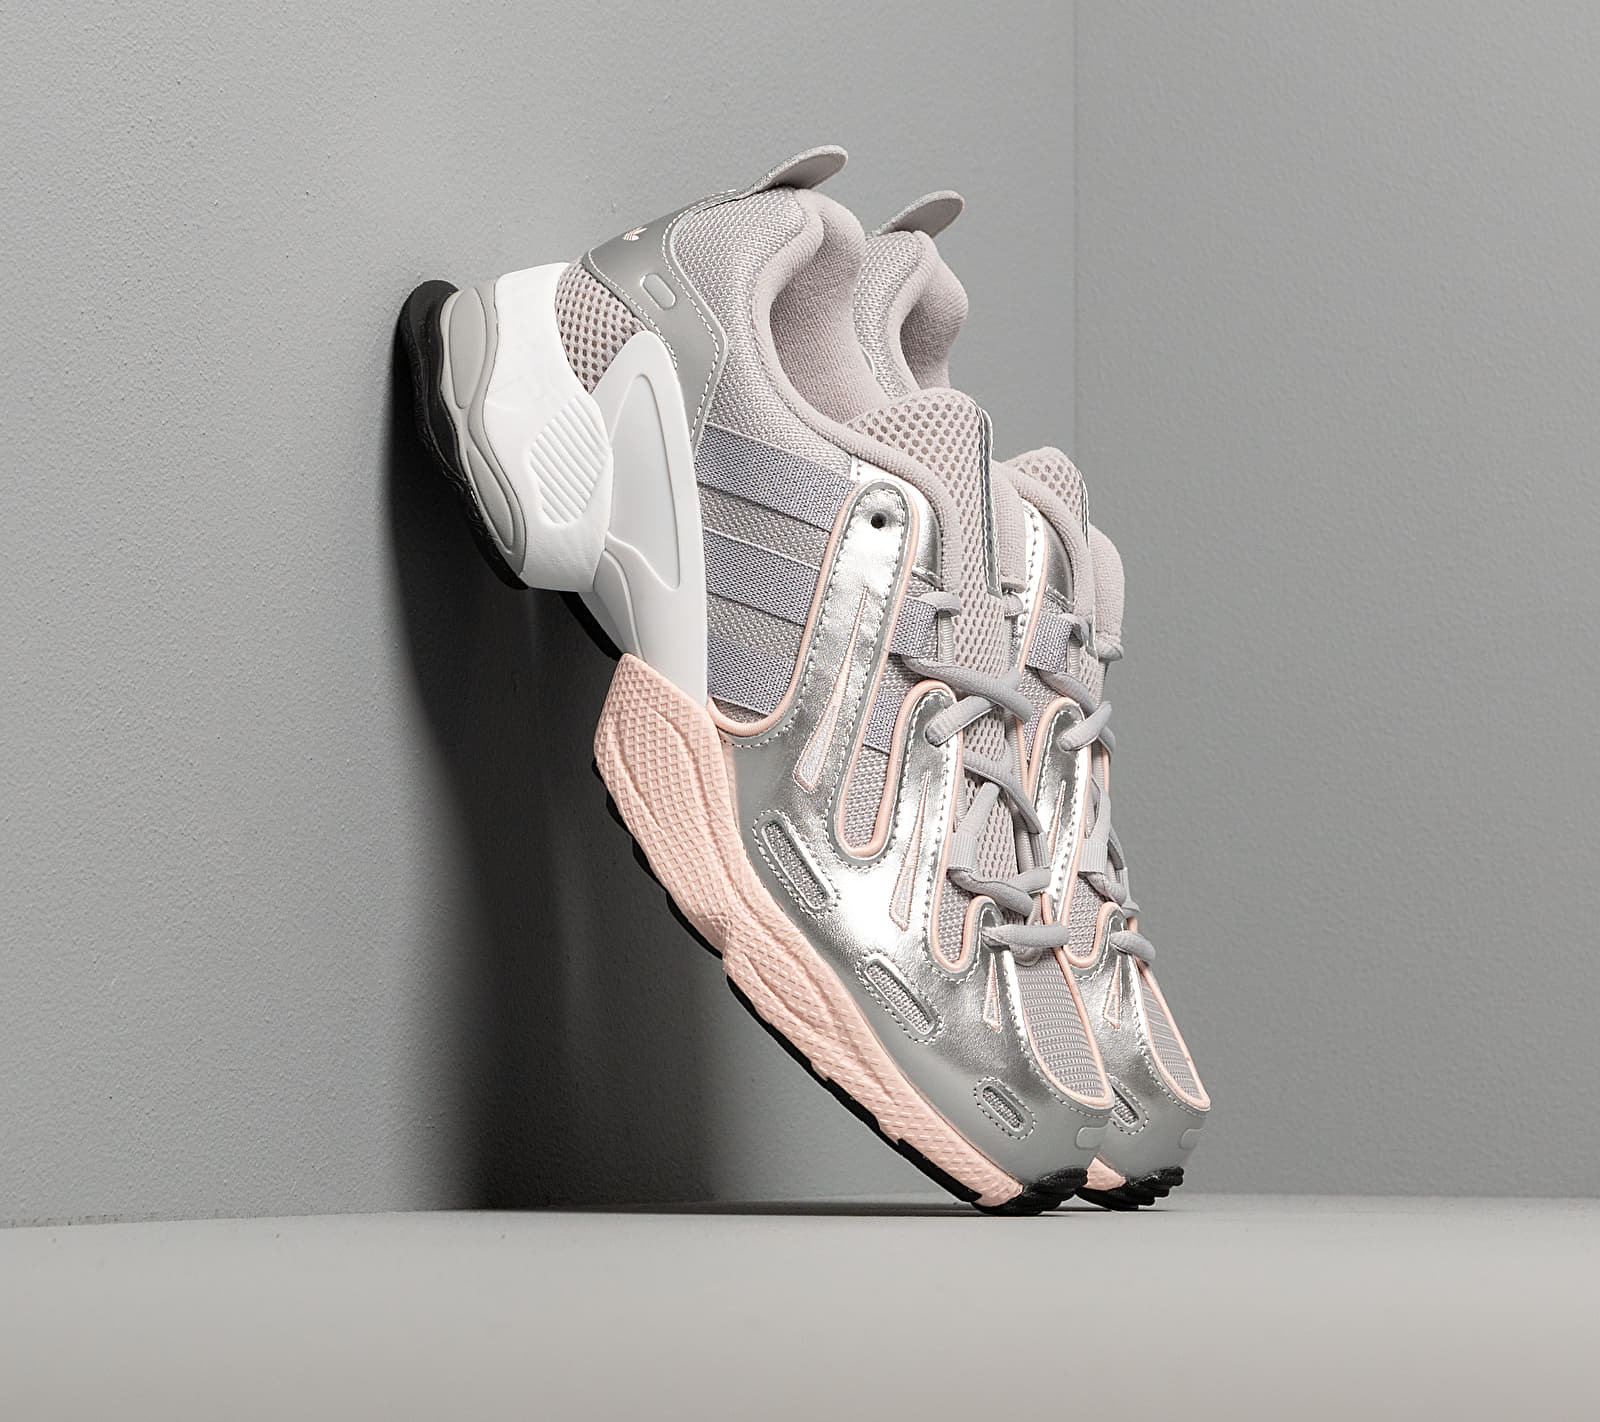 adidas EQT Gazelle W Grey Two/ Metalic Silver/ Ice Pink, Gray